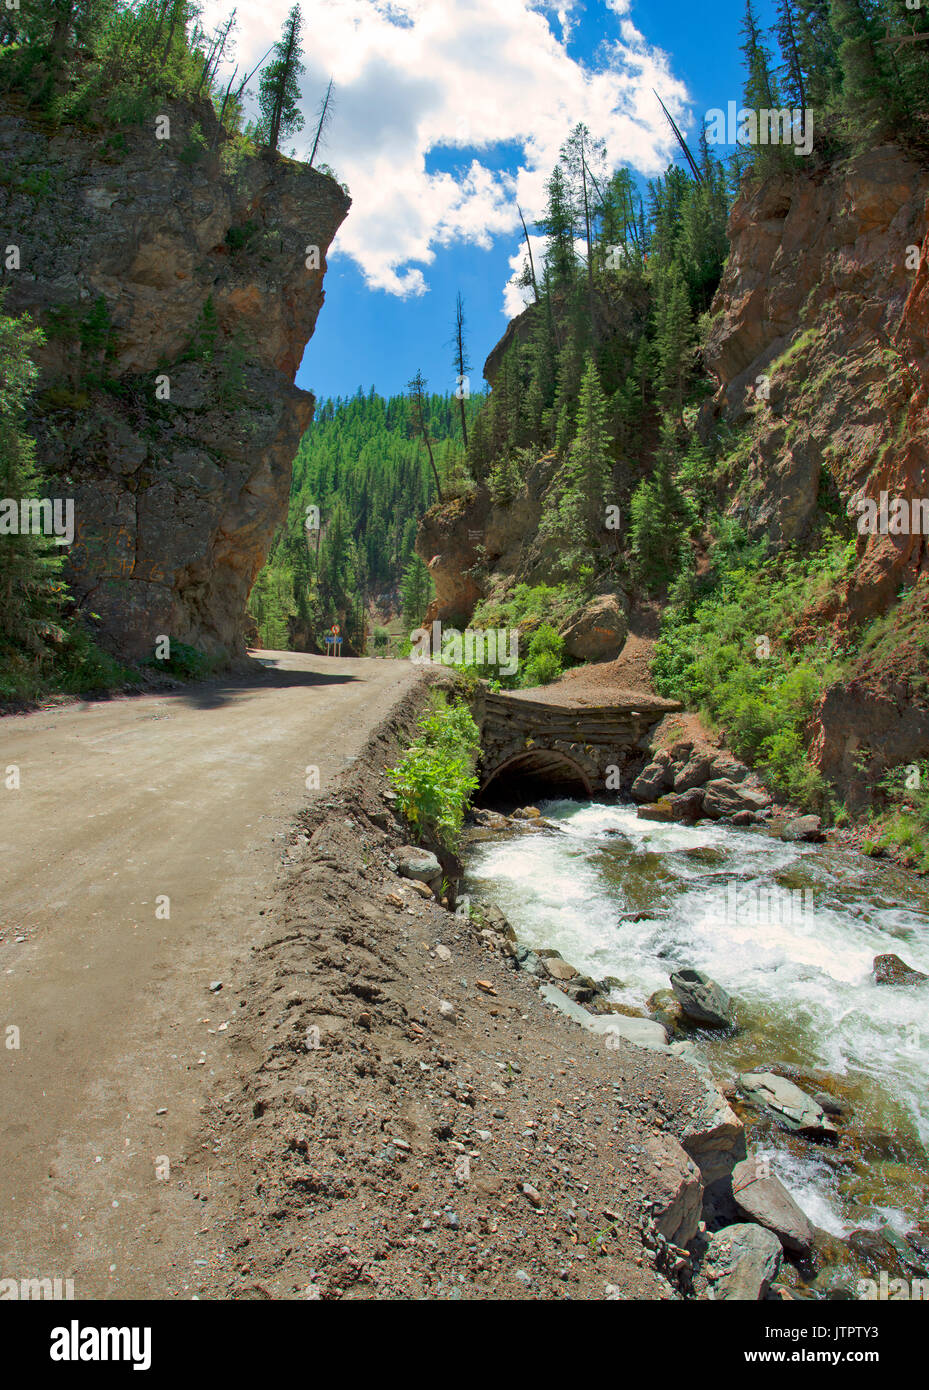 Red Gates pass. Altai mountains. River in the red rocks - Stock Image